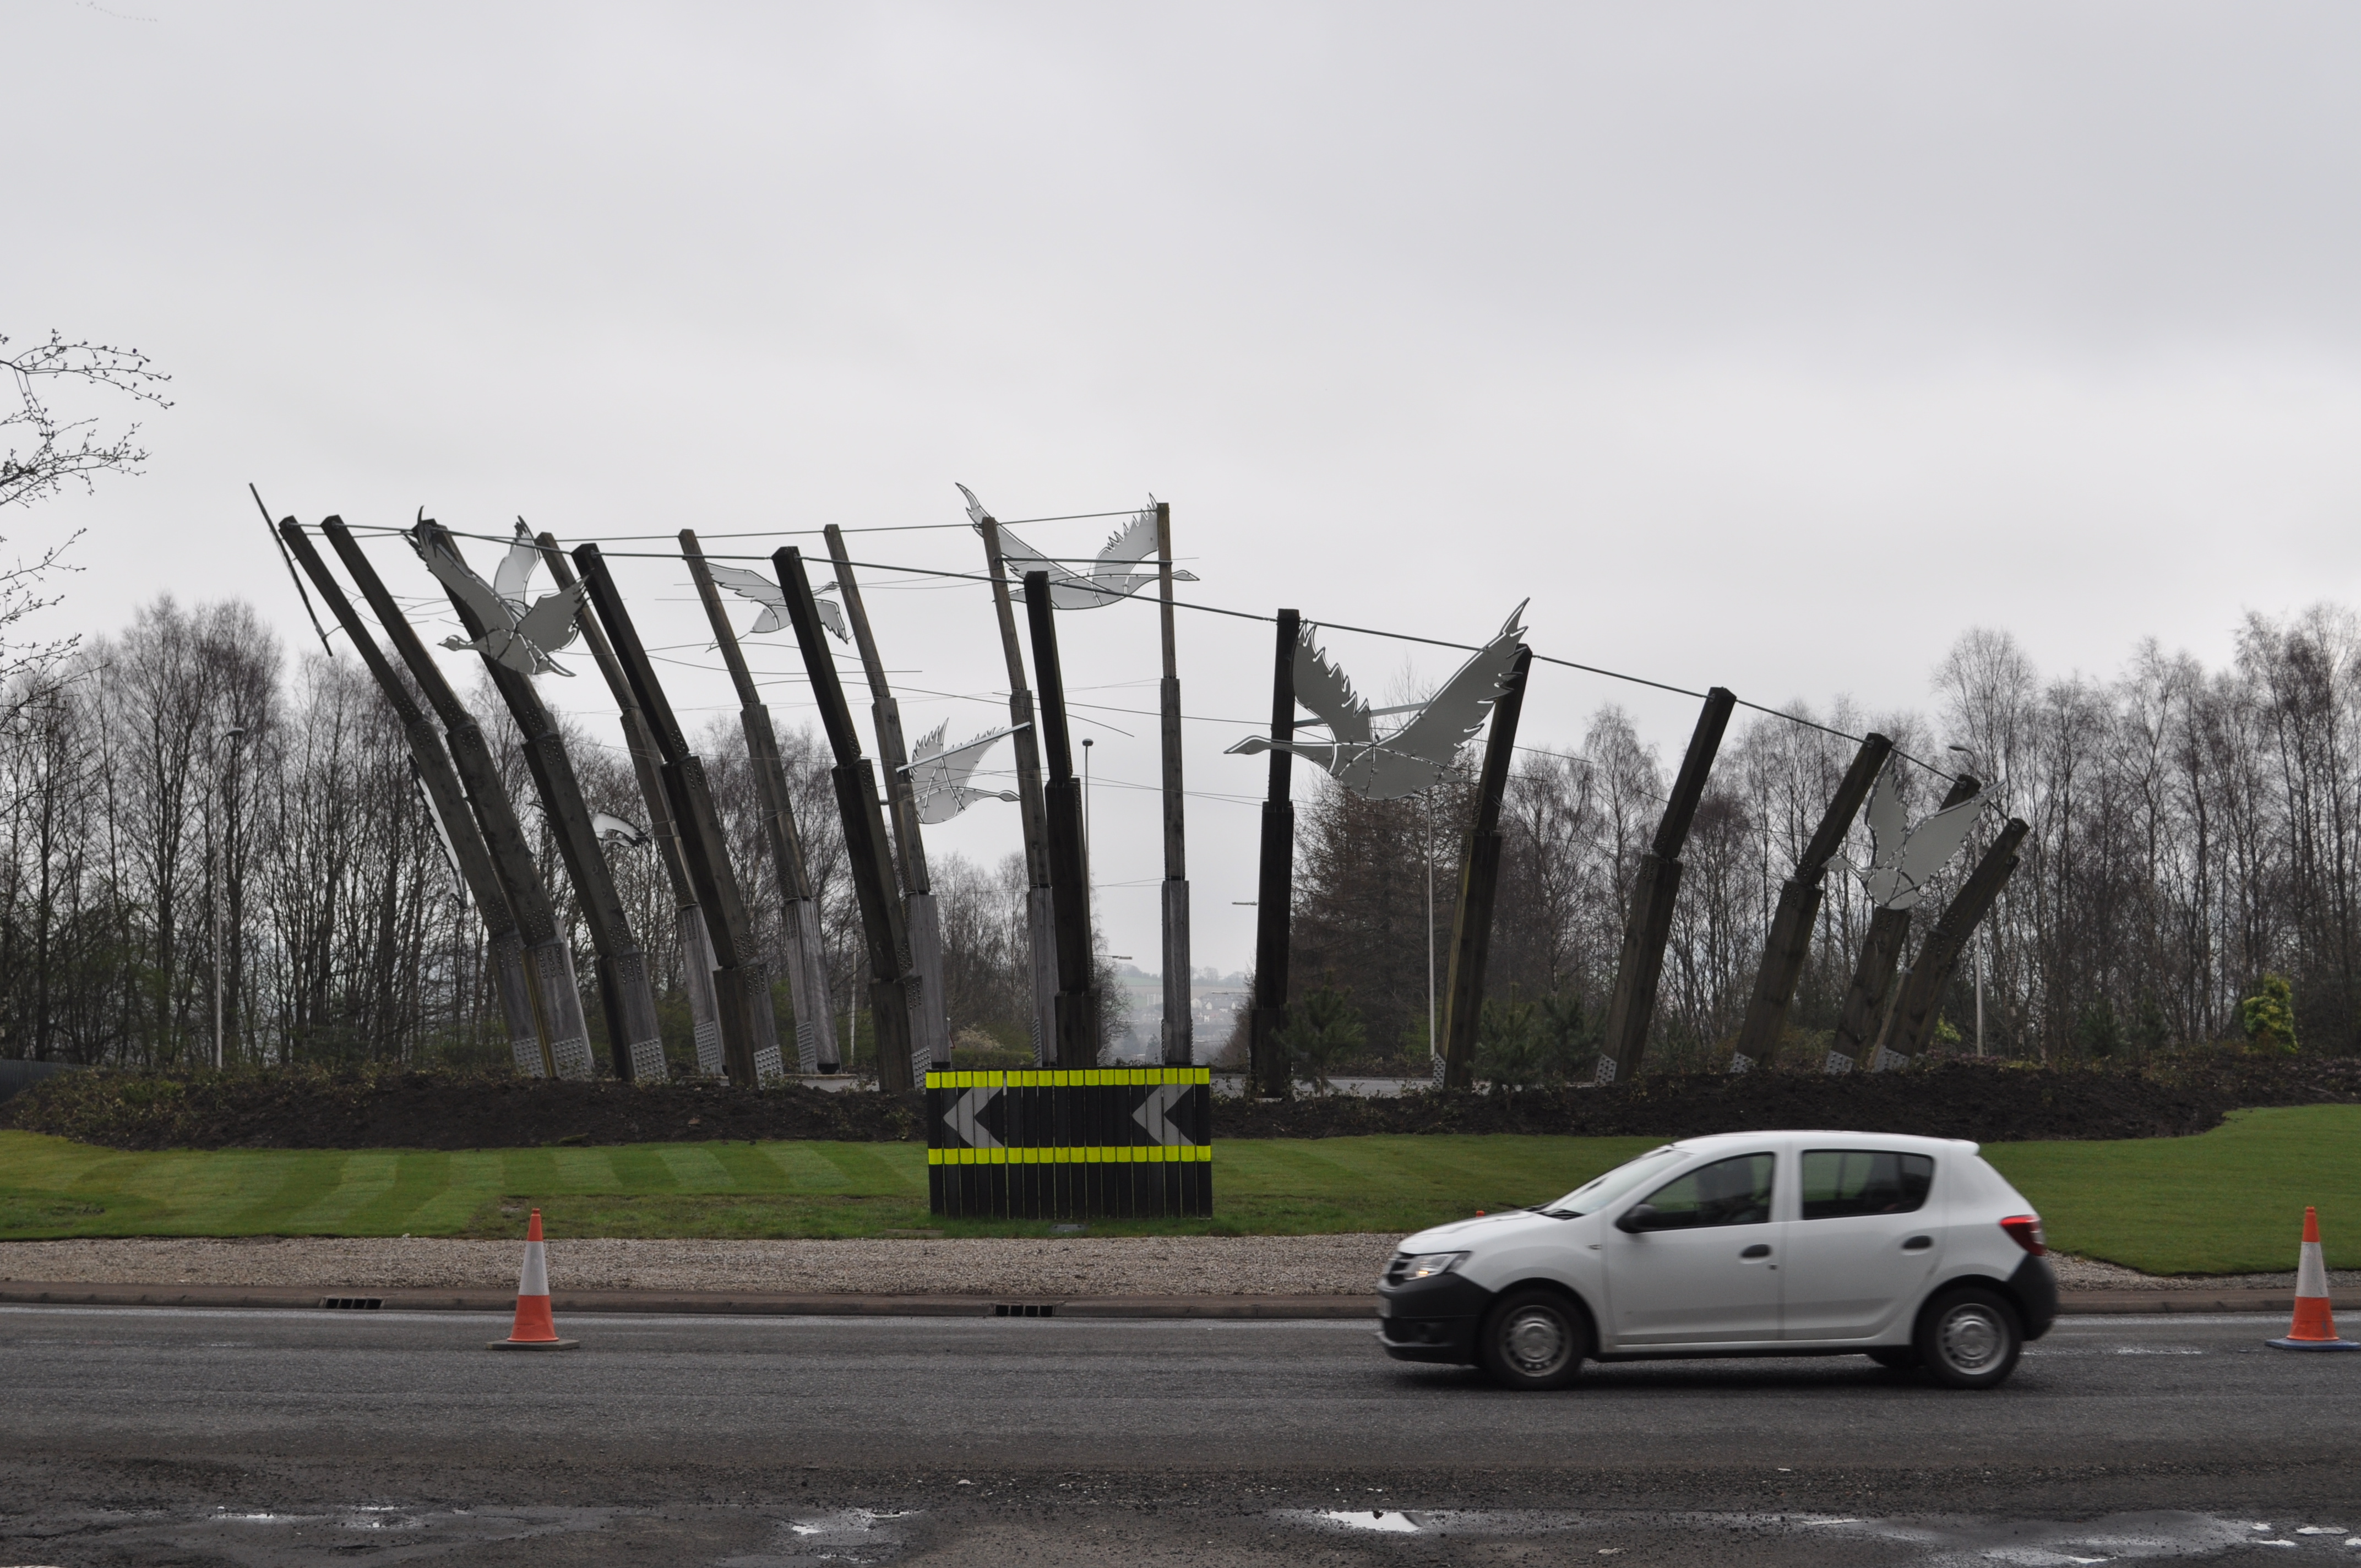 SANDY STODDART GOOSE SCUPTURE SCRAPPED AT STONEYMOLLAN ROUNDABOUT